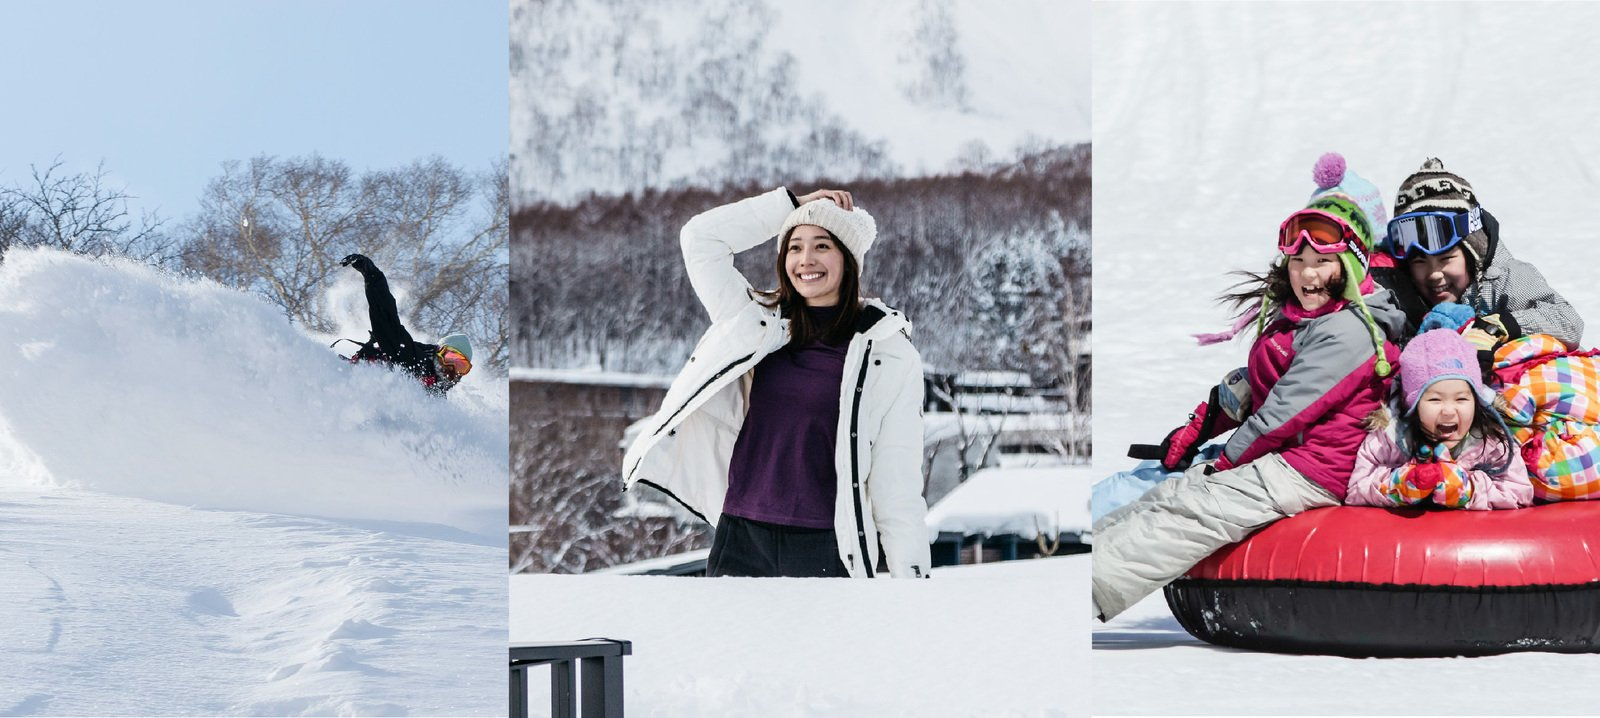 Go To Campaign: Save up to 50% on your Winter trip